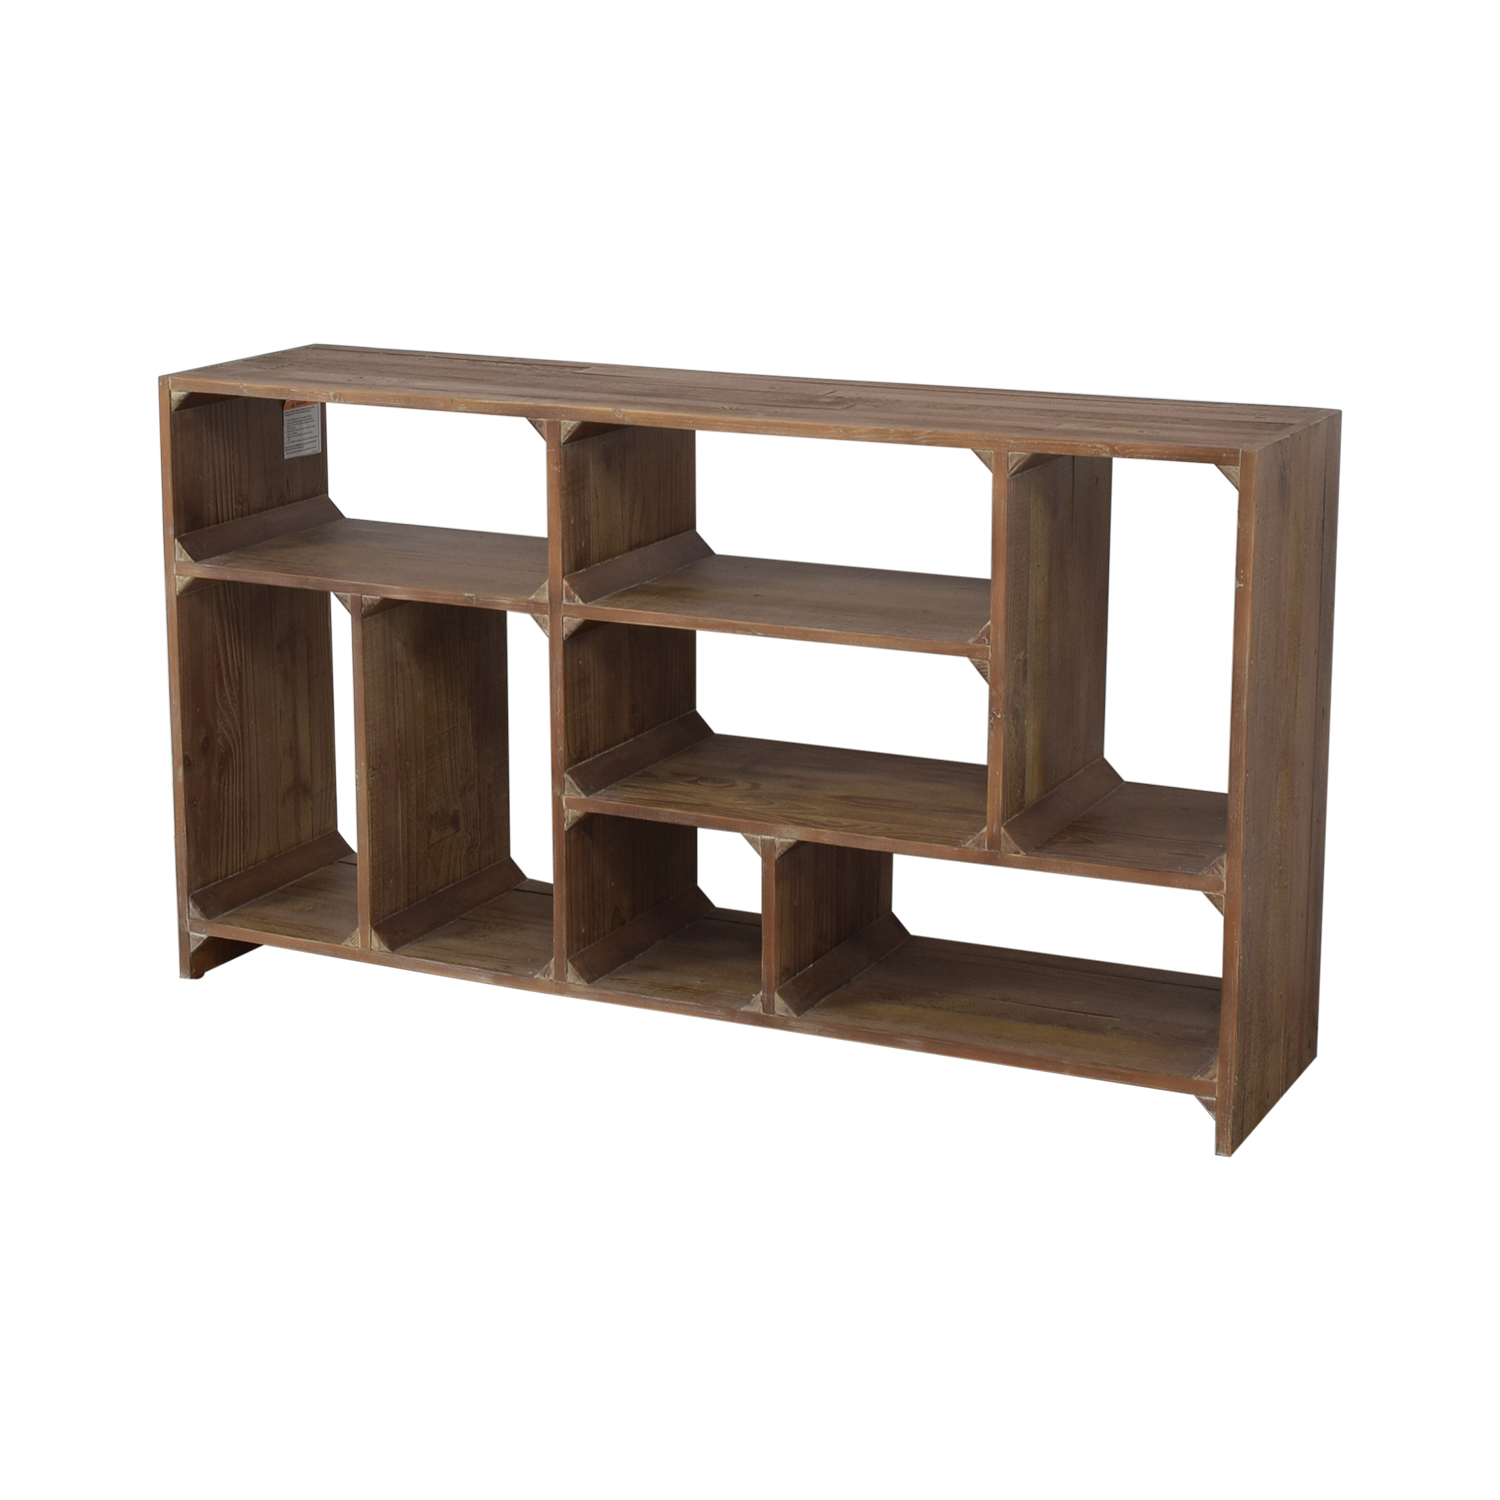 Restoration Hardware Restoration Hardware Reclaimed Pine Low Bookcase on sale